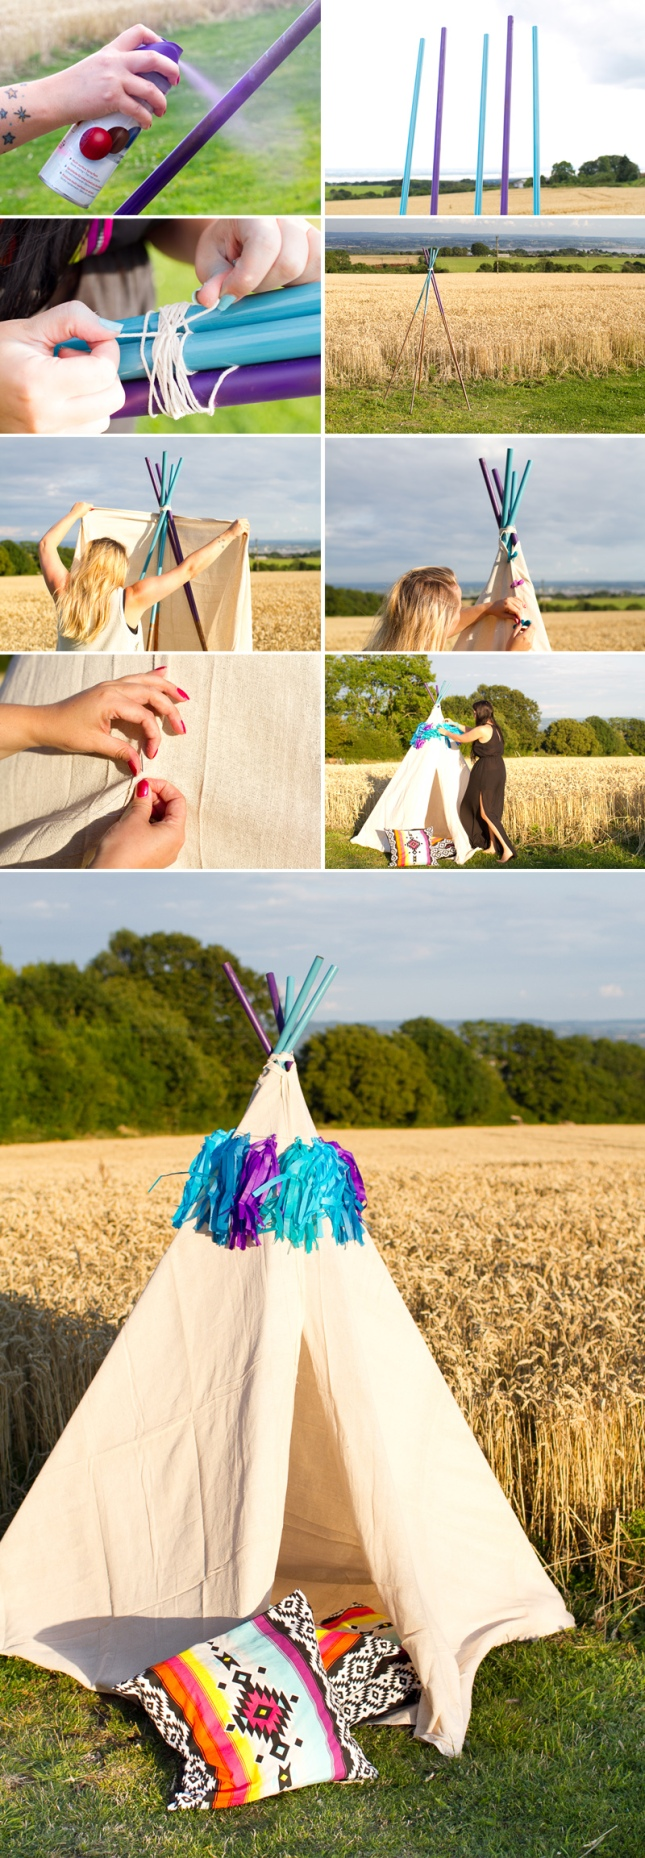 DIY-Mini-Tipi-How-to-make-teepee-collage